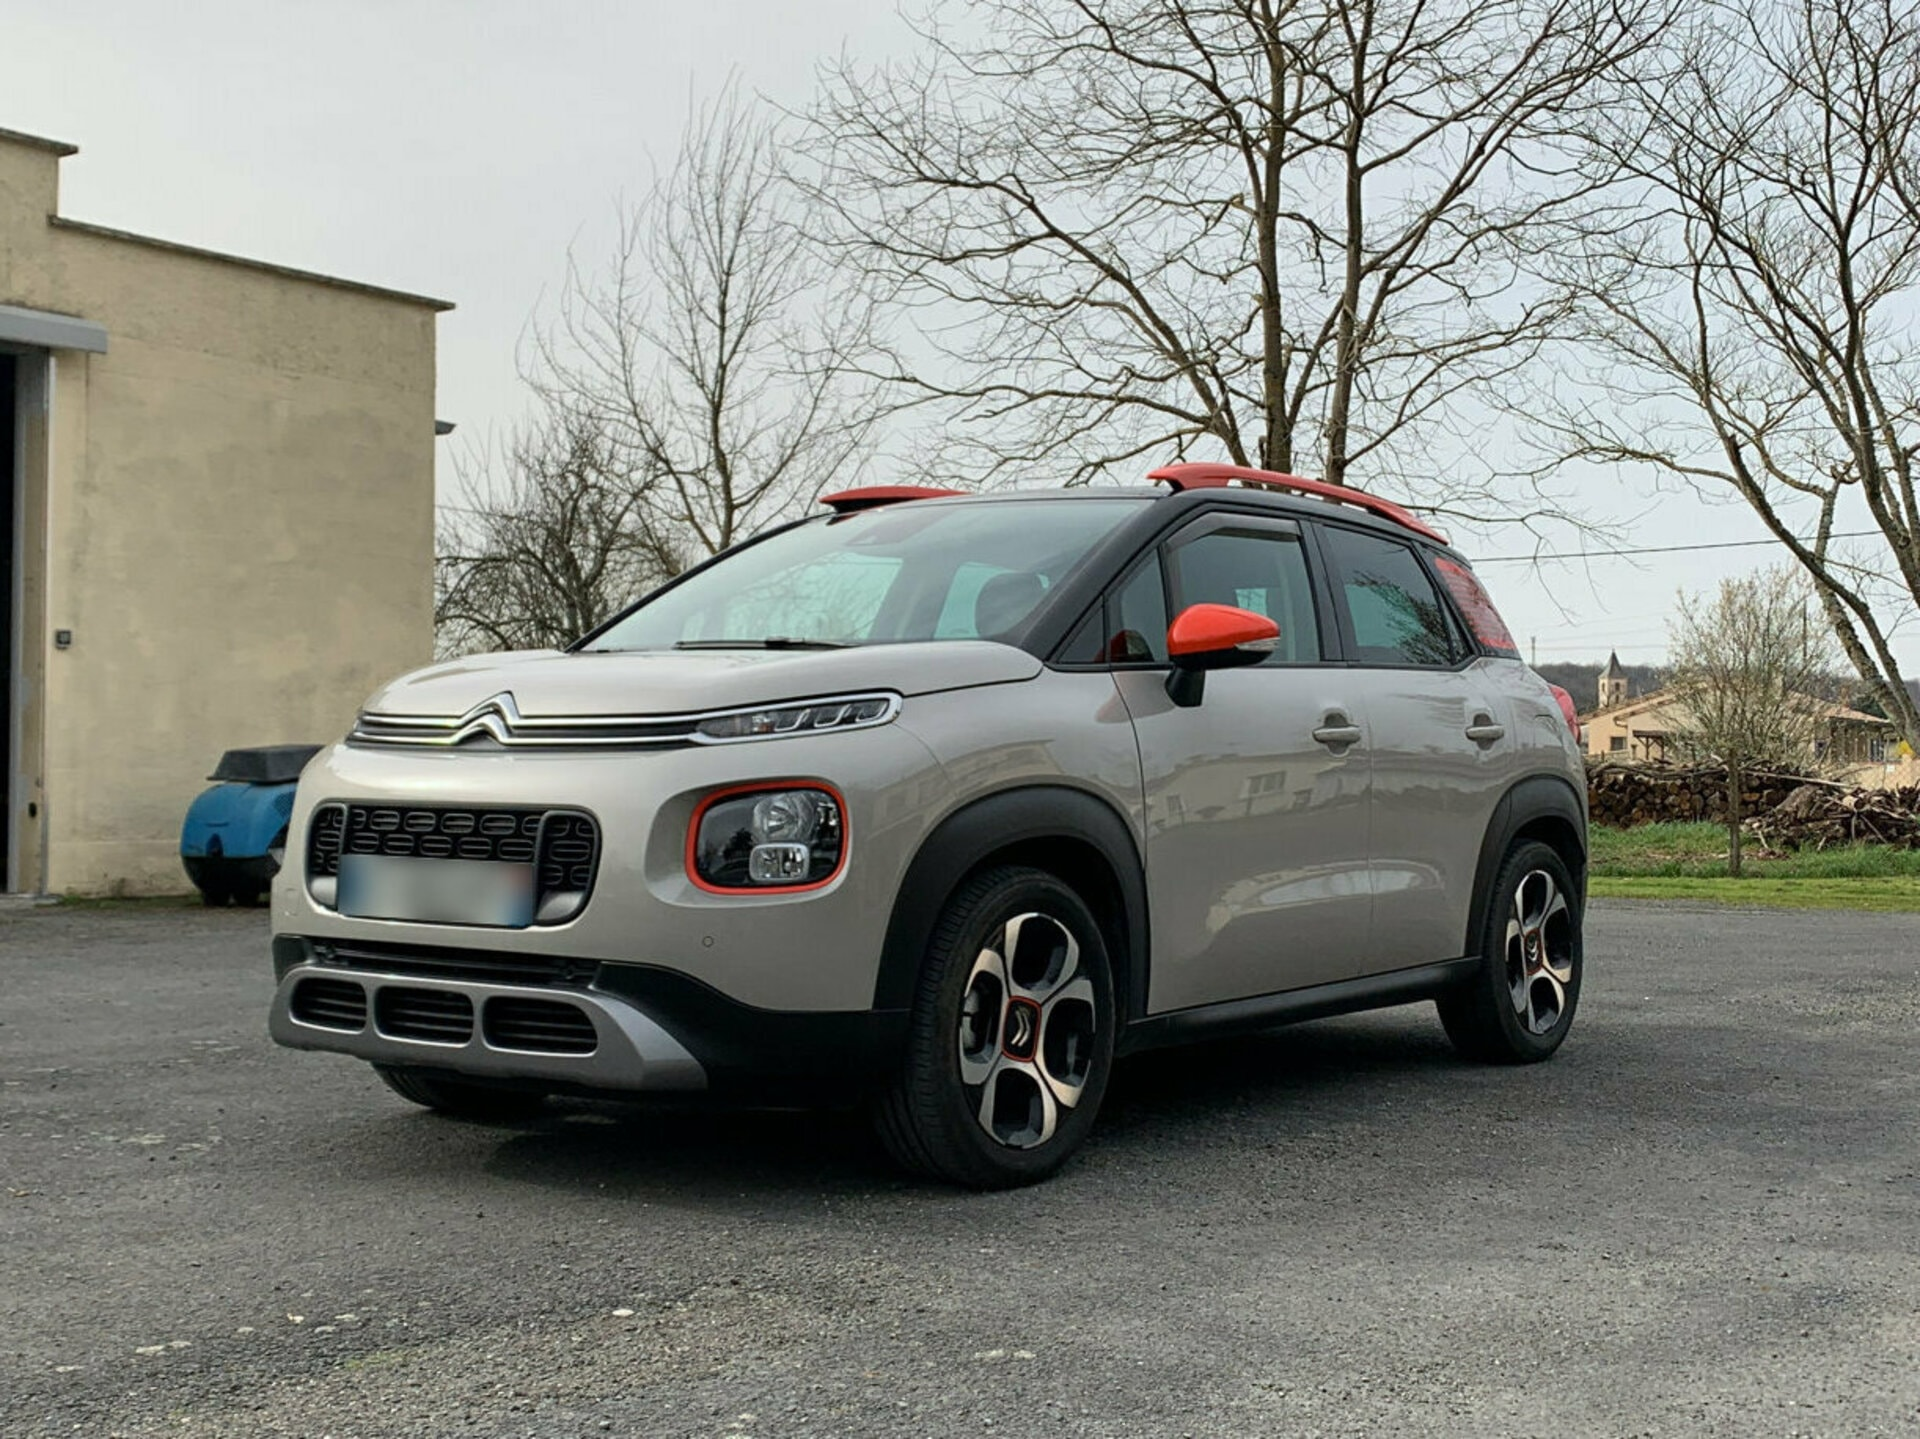 CITROEN C3 AIRCROSS 1.6 BLUEHDI 100 SHINE - Carventura